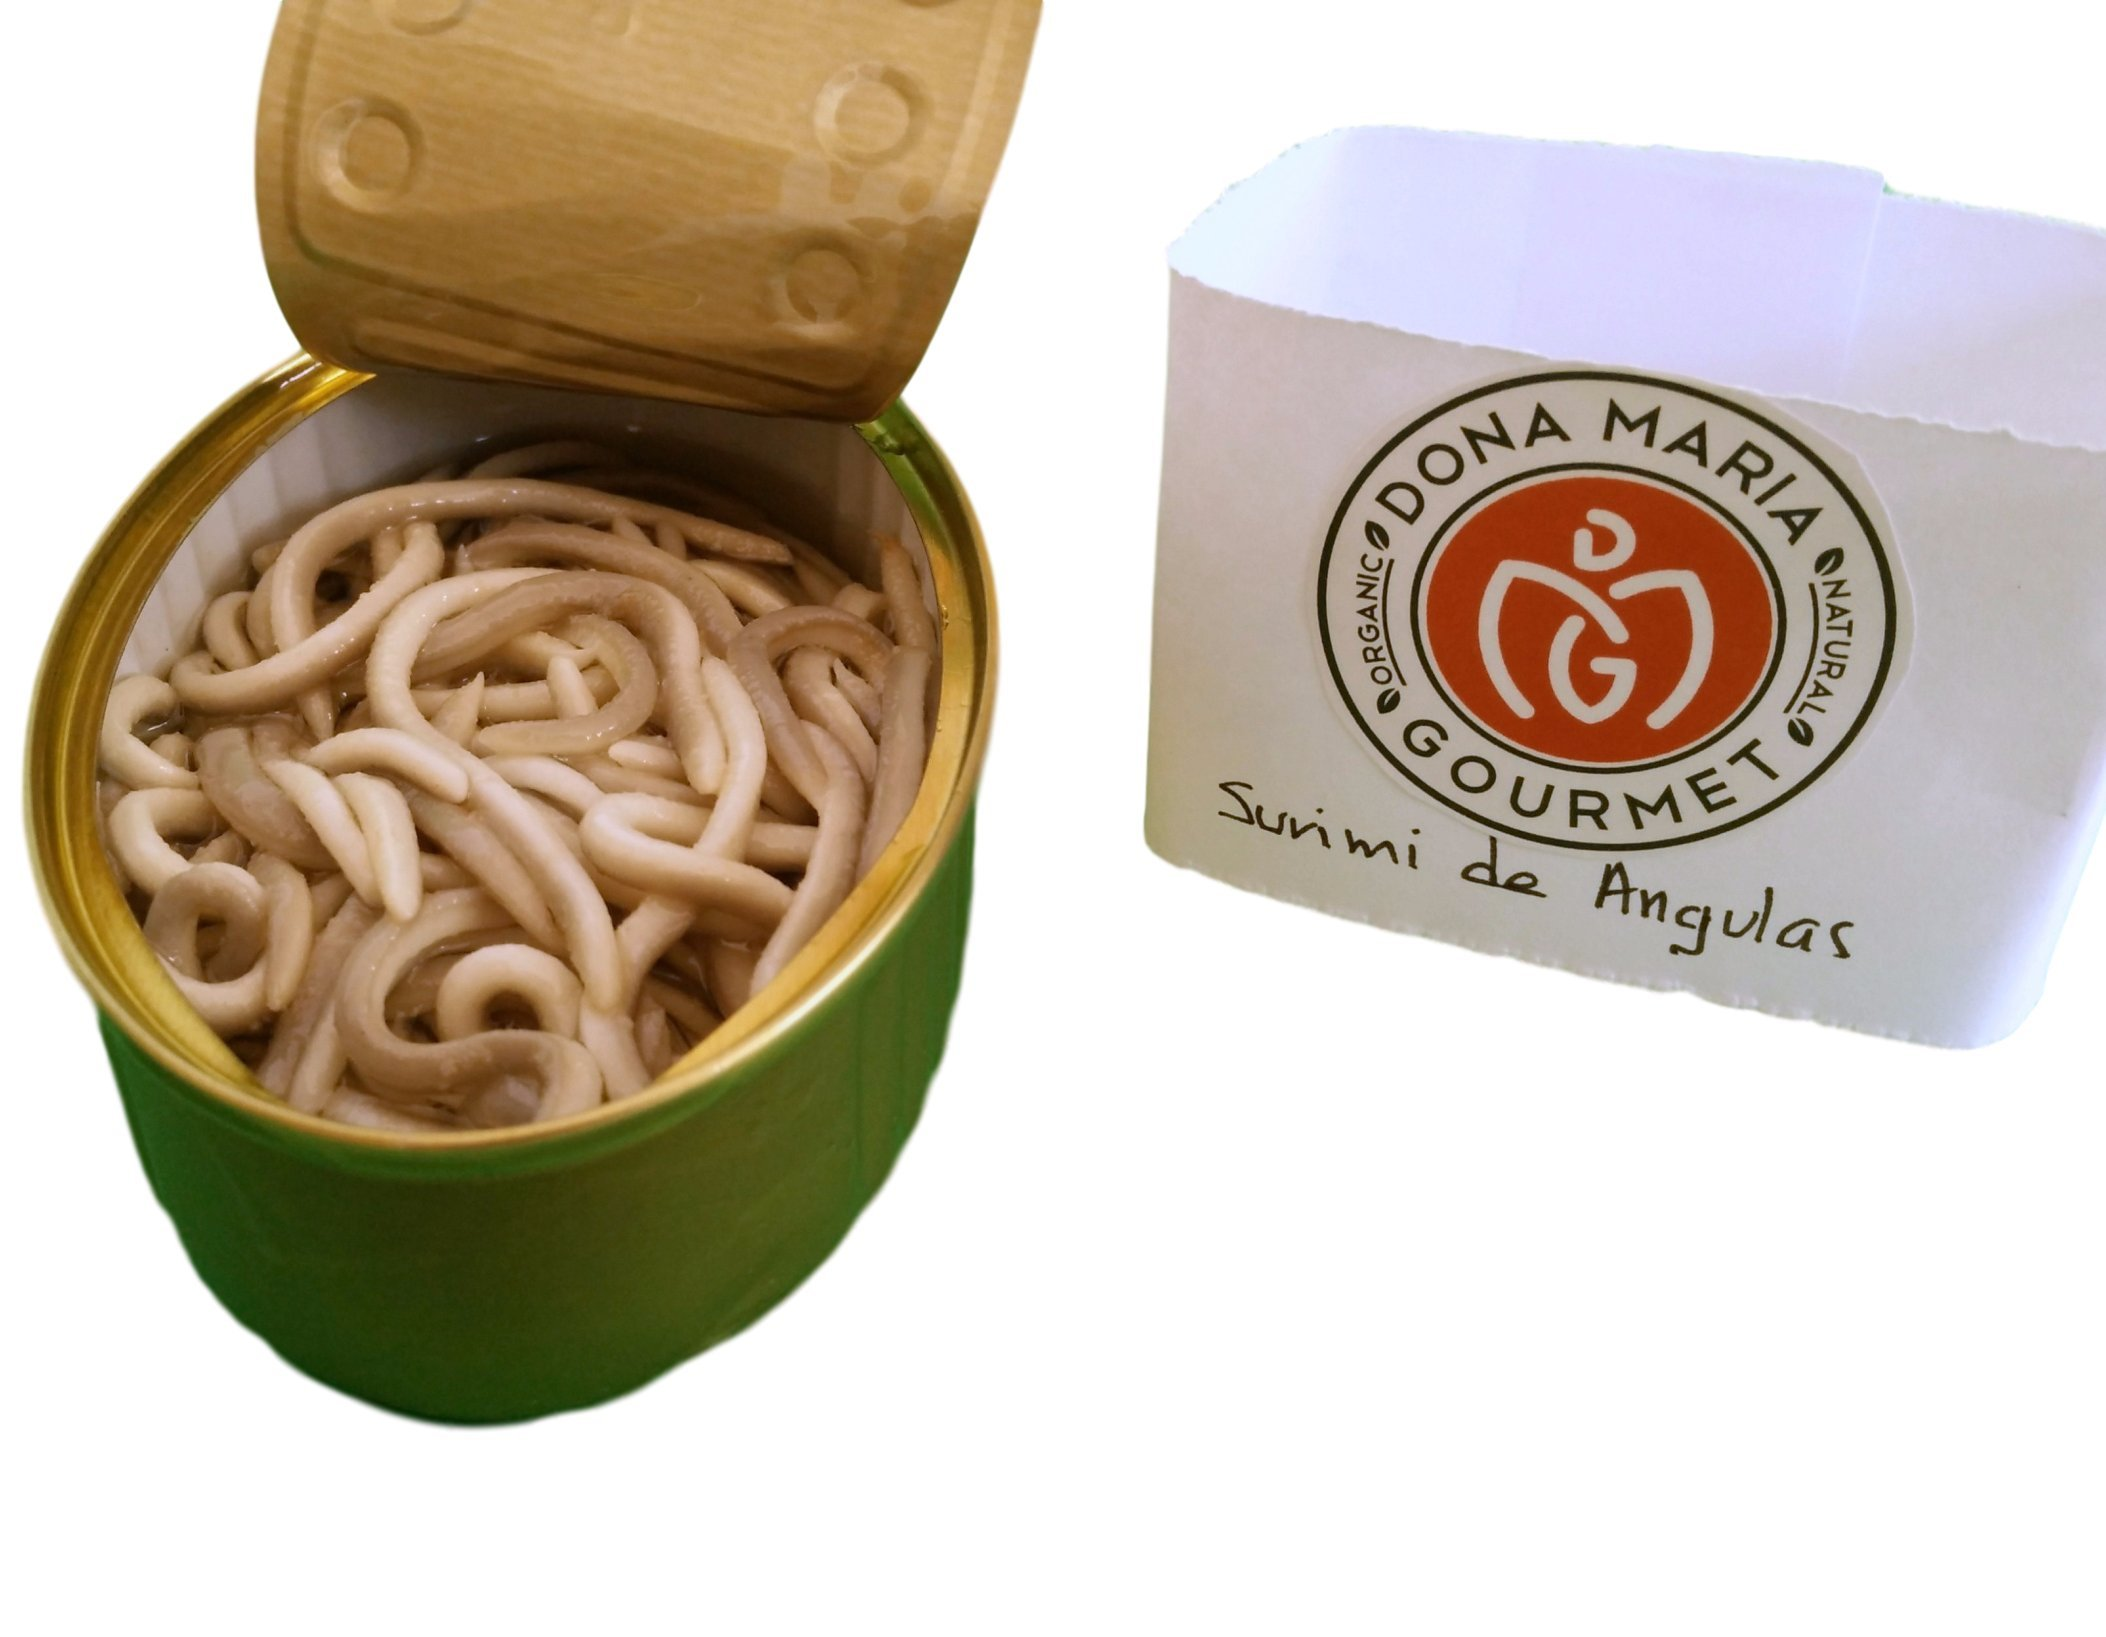 Surimi of Baby Eels in Garlic and Olive Sauce Pack of 2 Gluten Free (Angulas, Eelbroods) by Dona Maria Gourmet